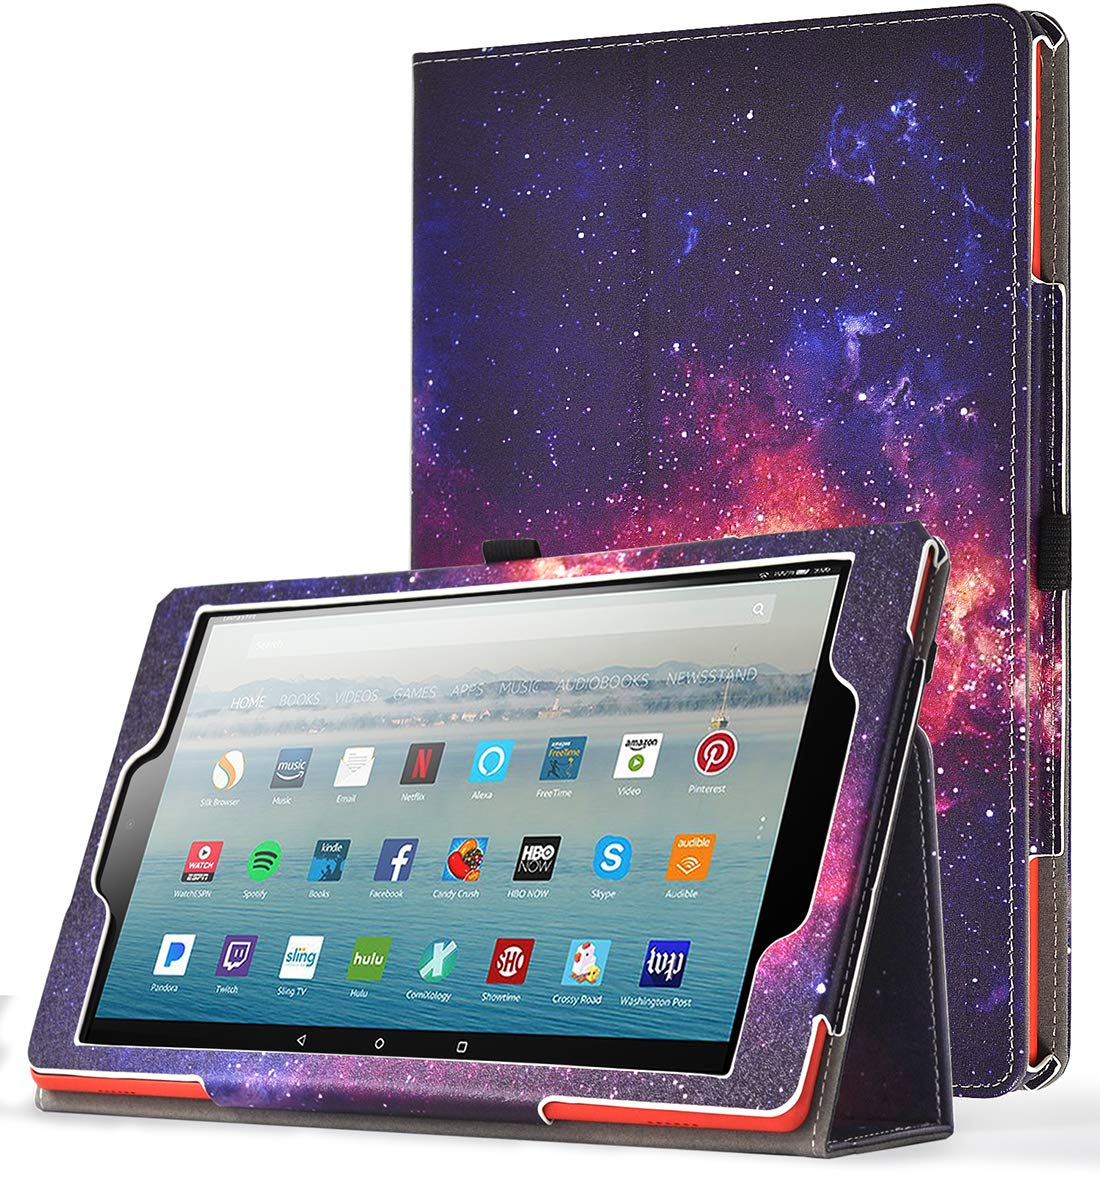 SlimFolio - 2019 Amazon Fire HD 10 Case